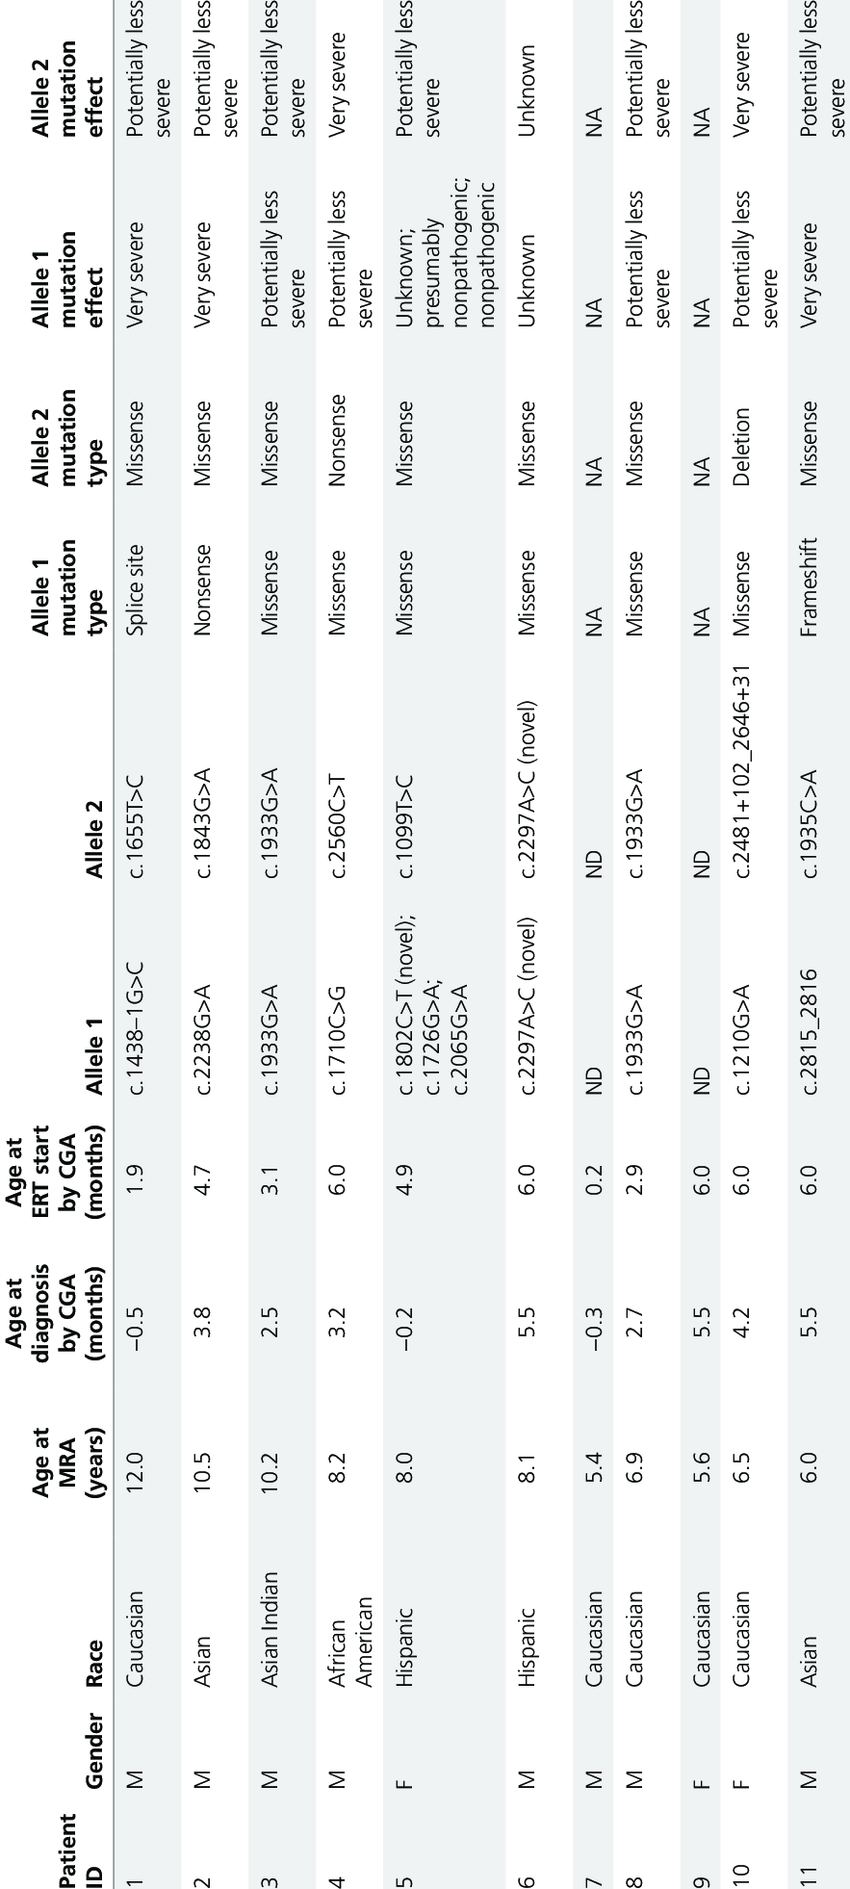 Baseline demographics of the 11 long-term survivors with